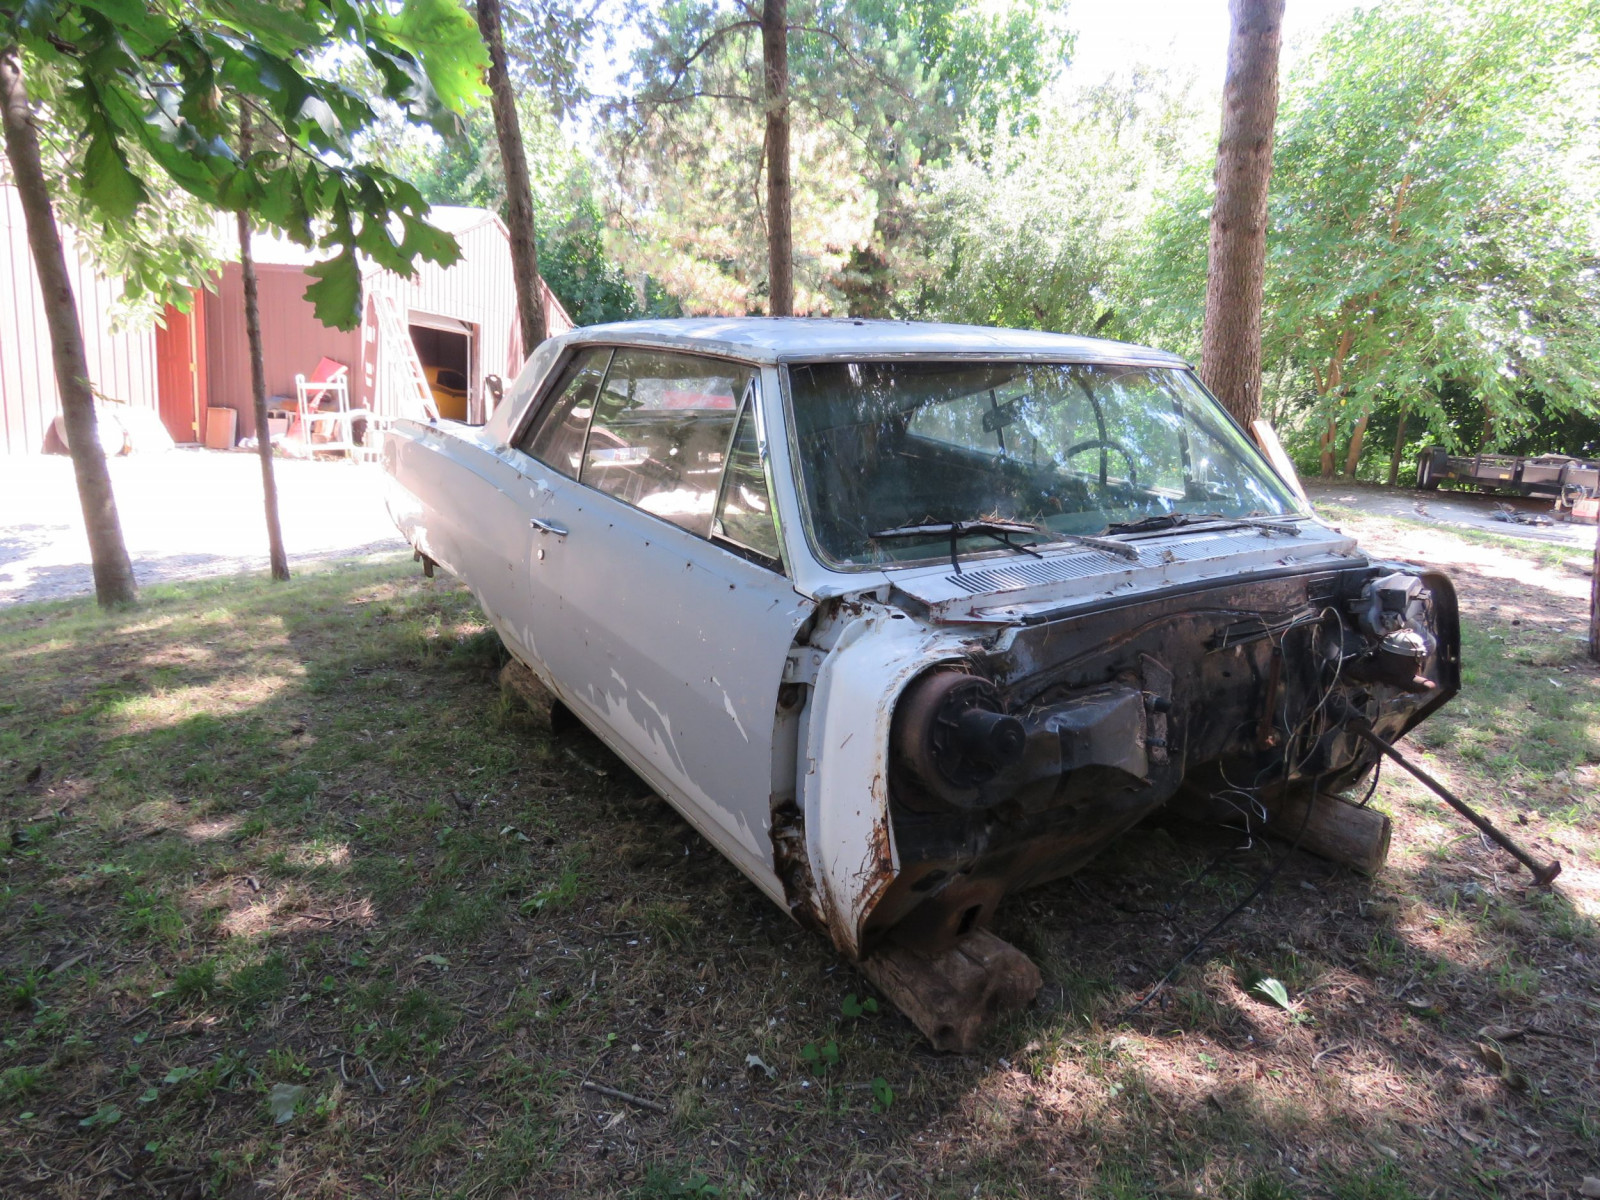 1964 Chevrolet Chevelle SS Project - Image 3